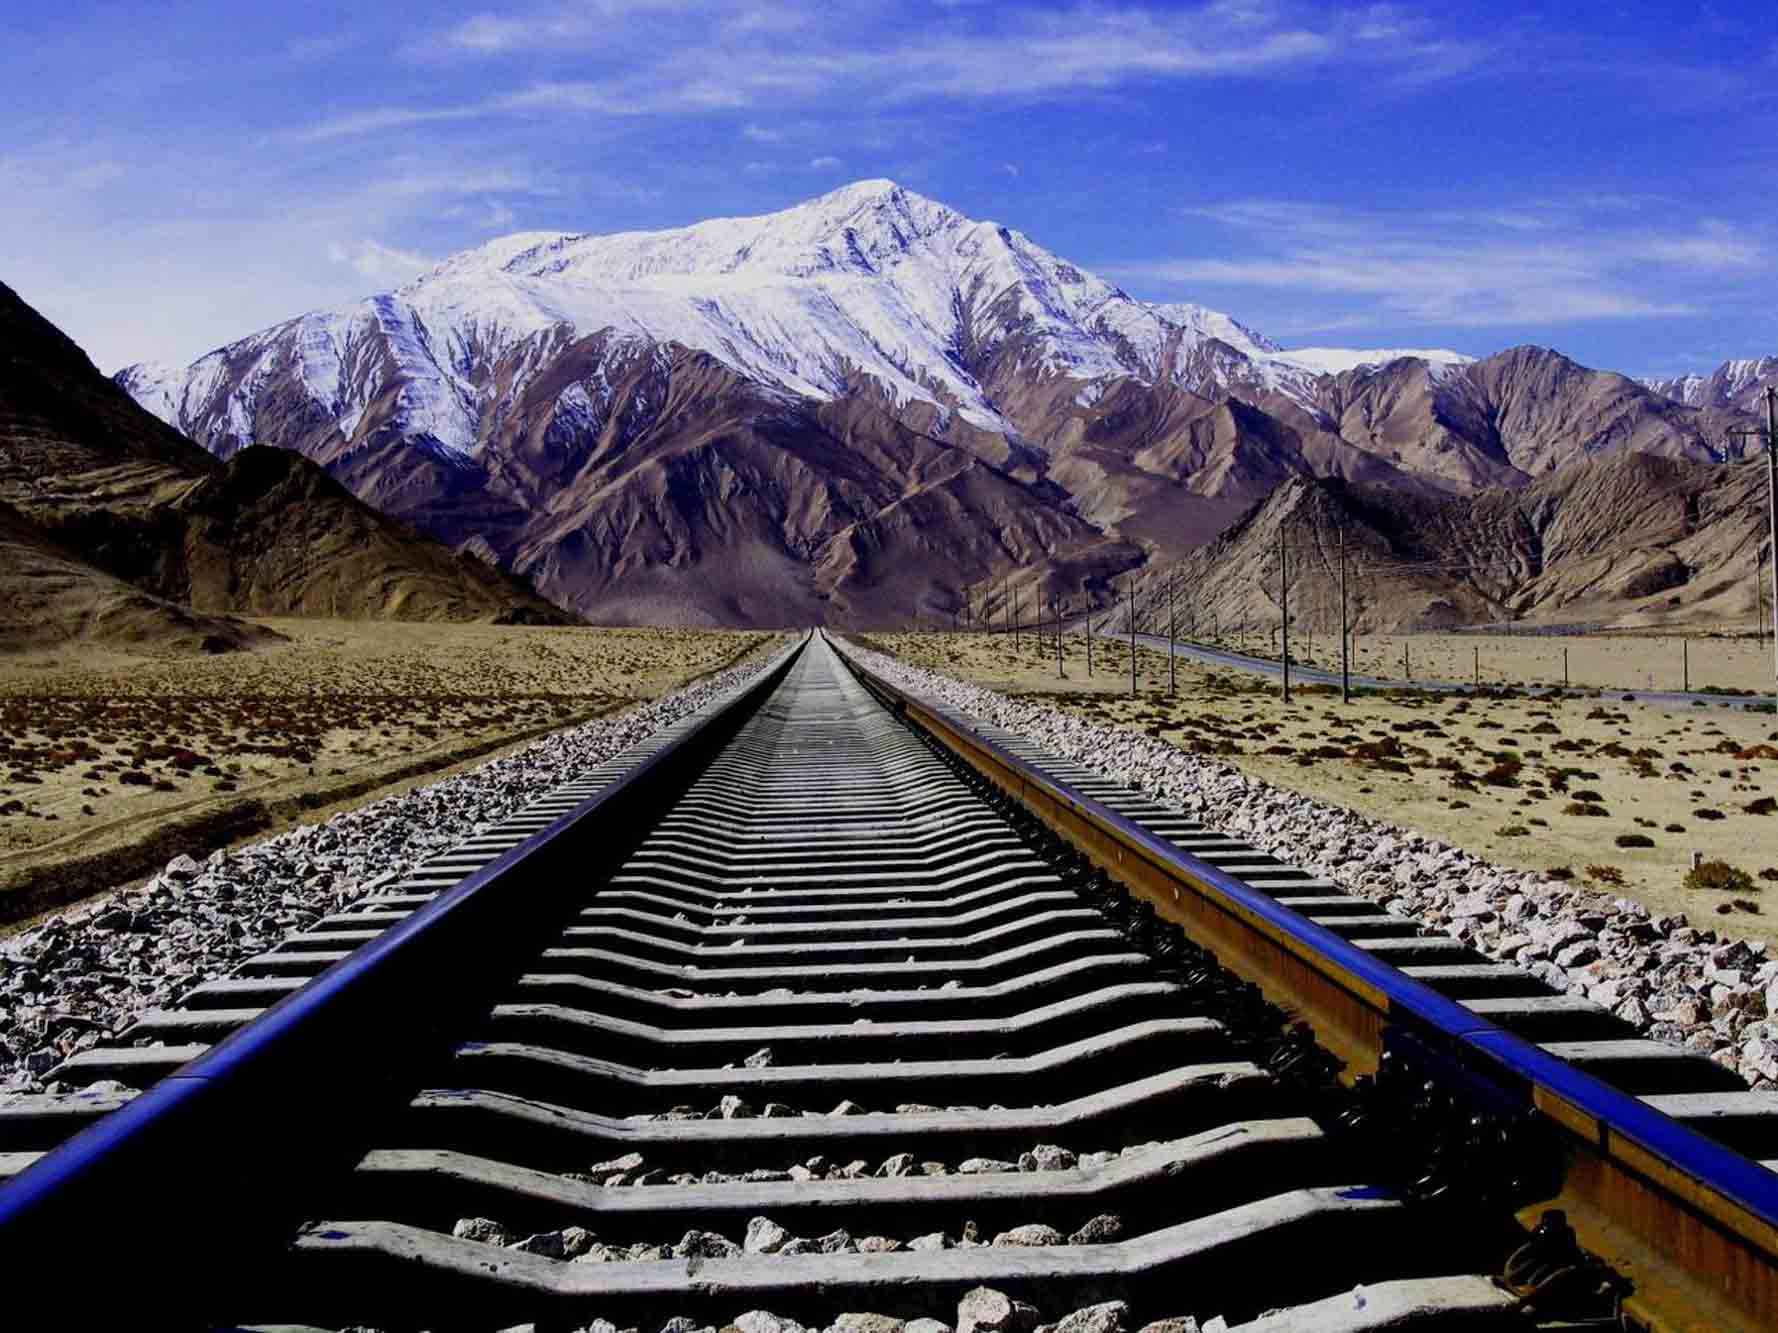 Timetable set for building Tibet-Nepal Railway link